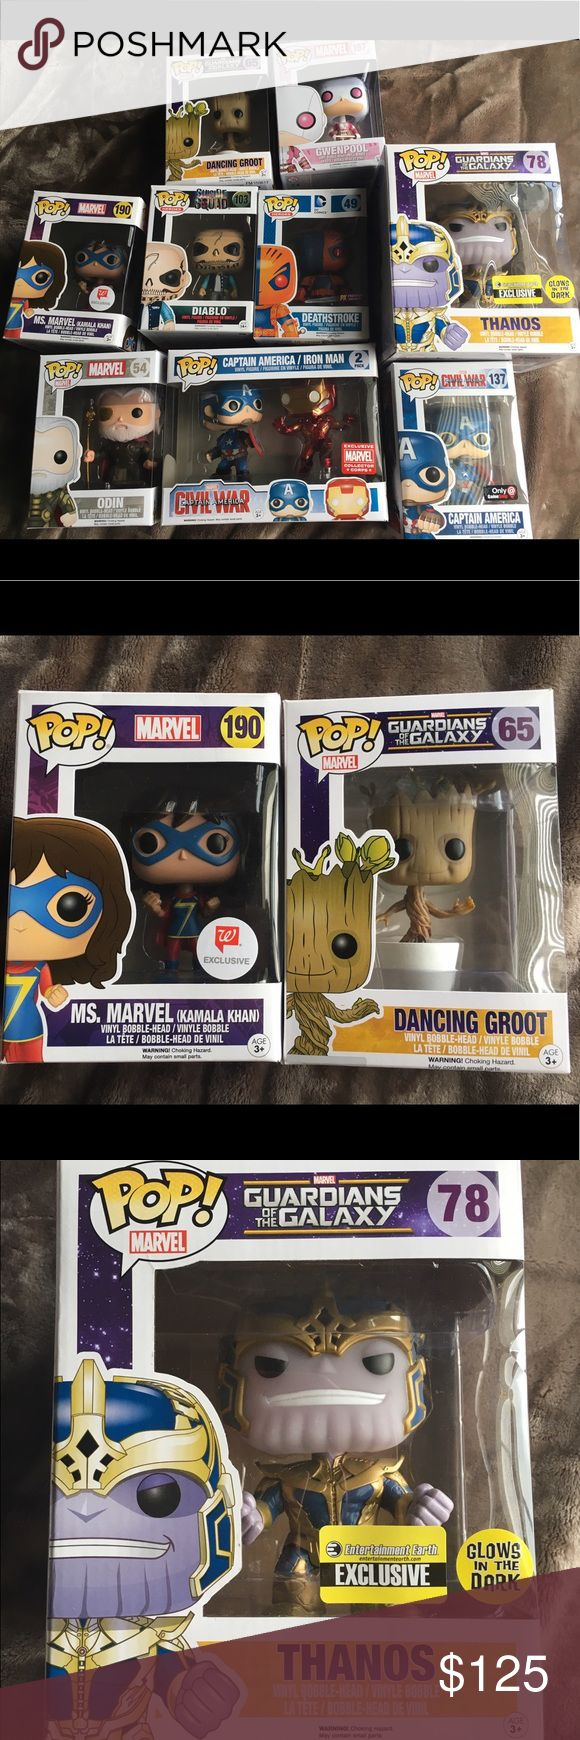 DC and Marvel Funko POP Figures All figures are in good condition and available to be sold as a lot for 125 (price firm) or let me know if you would like to buy separately. Ms. Marvel, Captain America (GS exc.), and Gwenpool are all MINT CONDITION BOXES. Dancing Groot, Thanos, Diablo, and Odin are MINT ASIDE FROM SMALL DENT OR SCRATCH ON ONE PANEL. Captain America and Iron Man 2-pack has LIGHT WEAR. Deathstroke has MODERATE WEAR (see photo). Funko POP Other